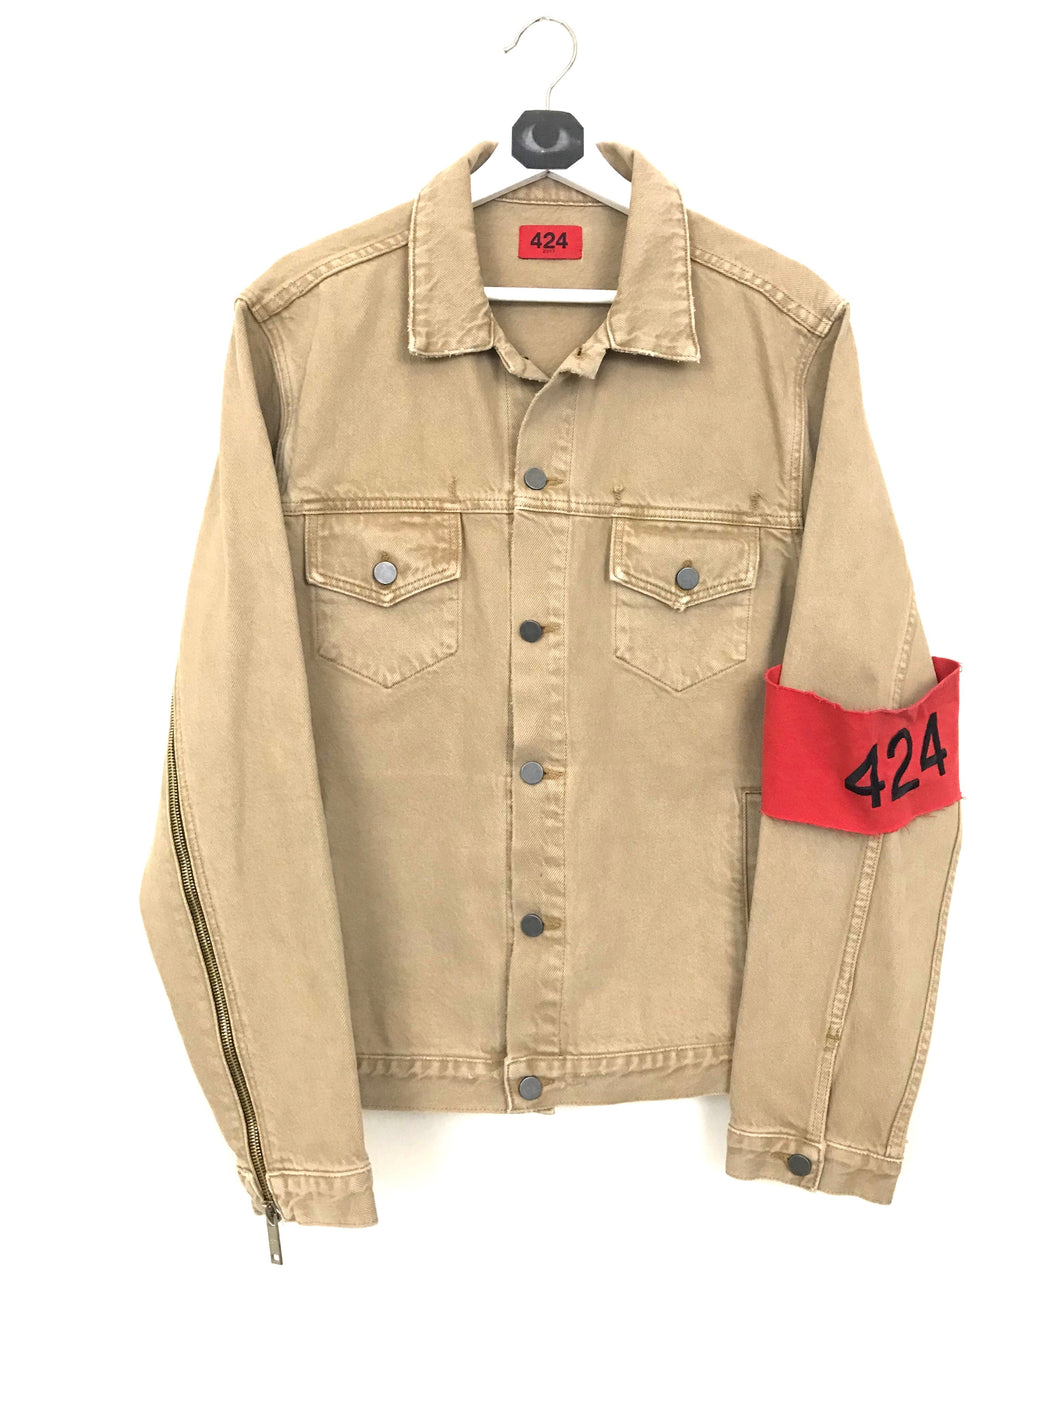 424 Denim Trucker Jacket- Camel (Under Retail)